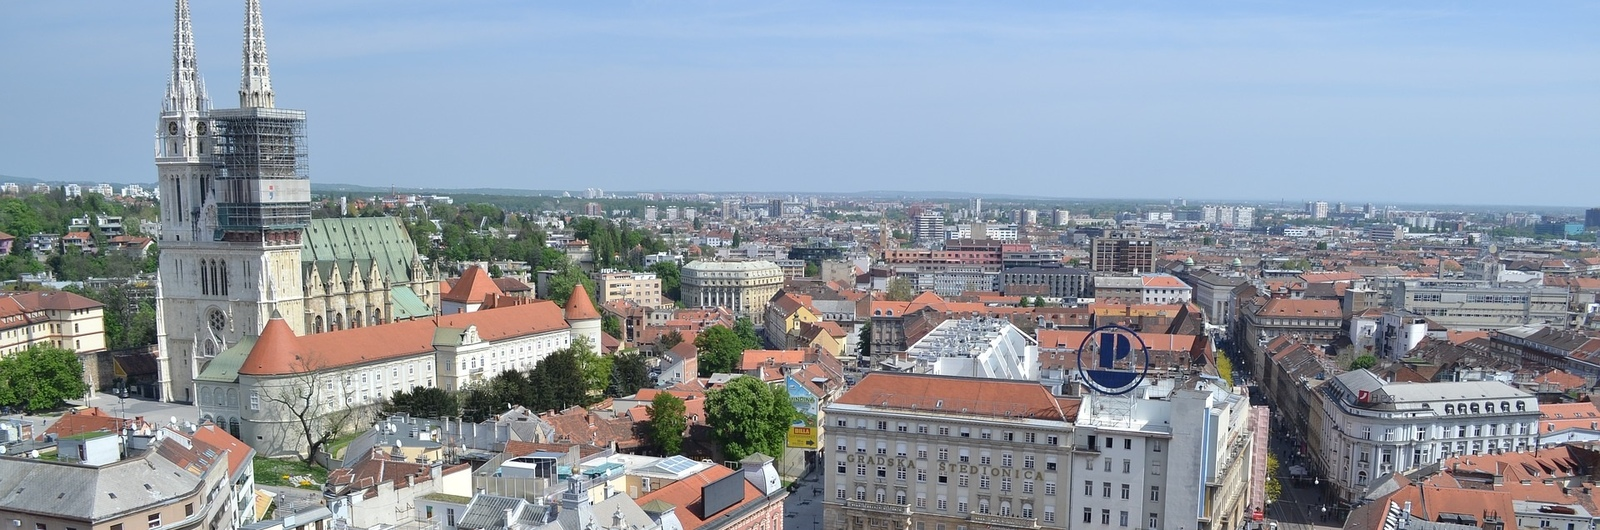 zagreb city header